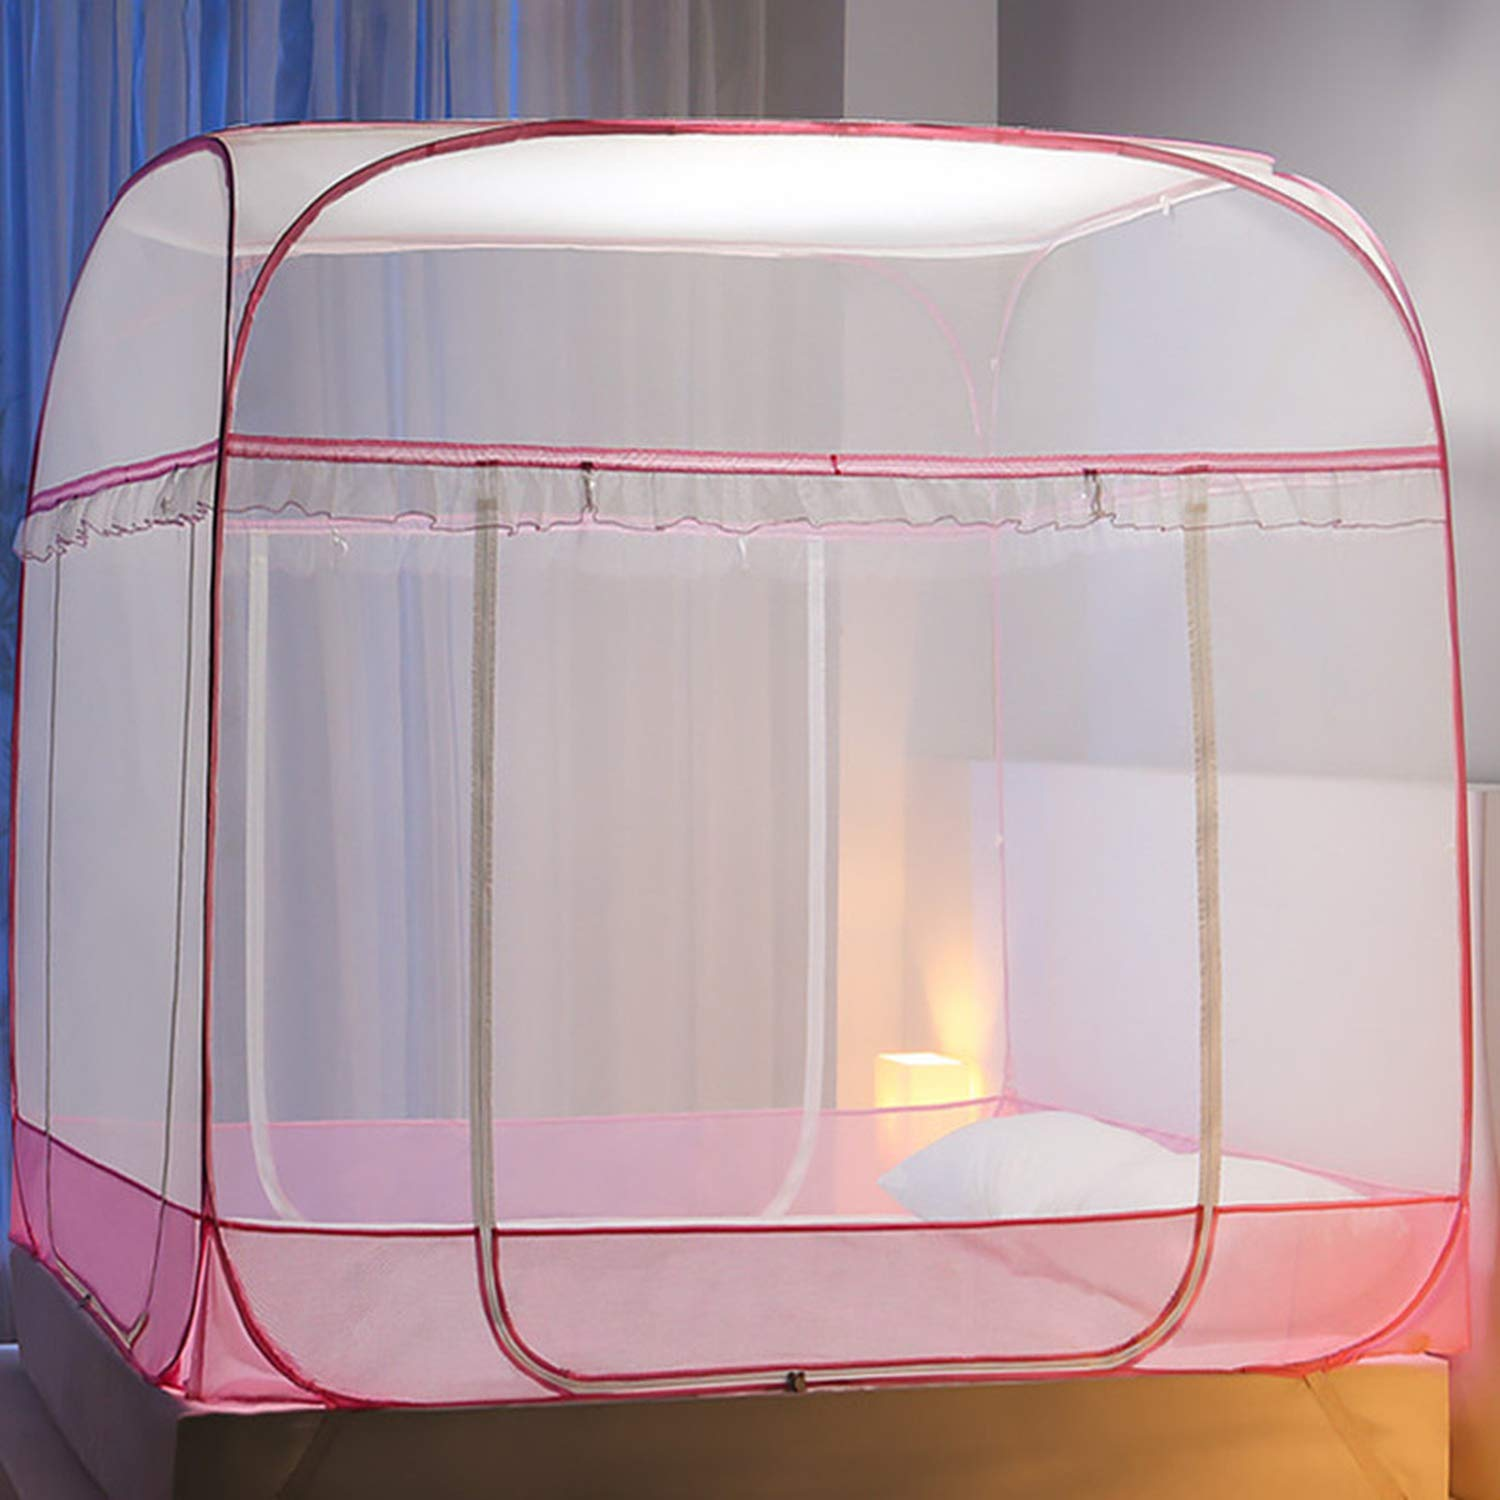 Large Space Mosquito Curtain Mesh Breathable Summer Mosquito Net Square Top Bed Net Home Decoration Bedding Tent,Pink No Bottom,1.2m (4 feet) Bed by SuWuan mosquito net (Image #3)